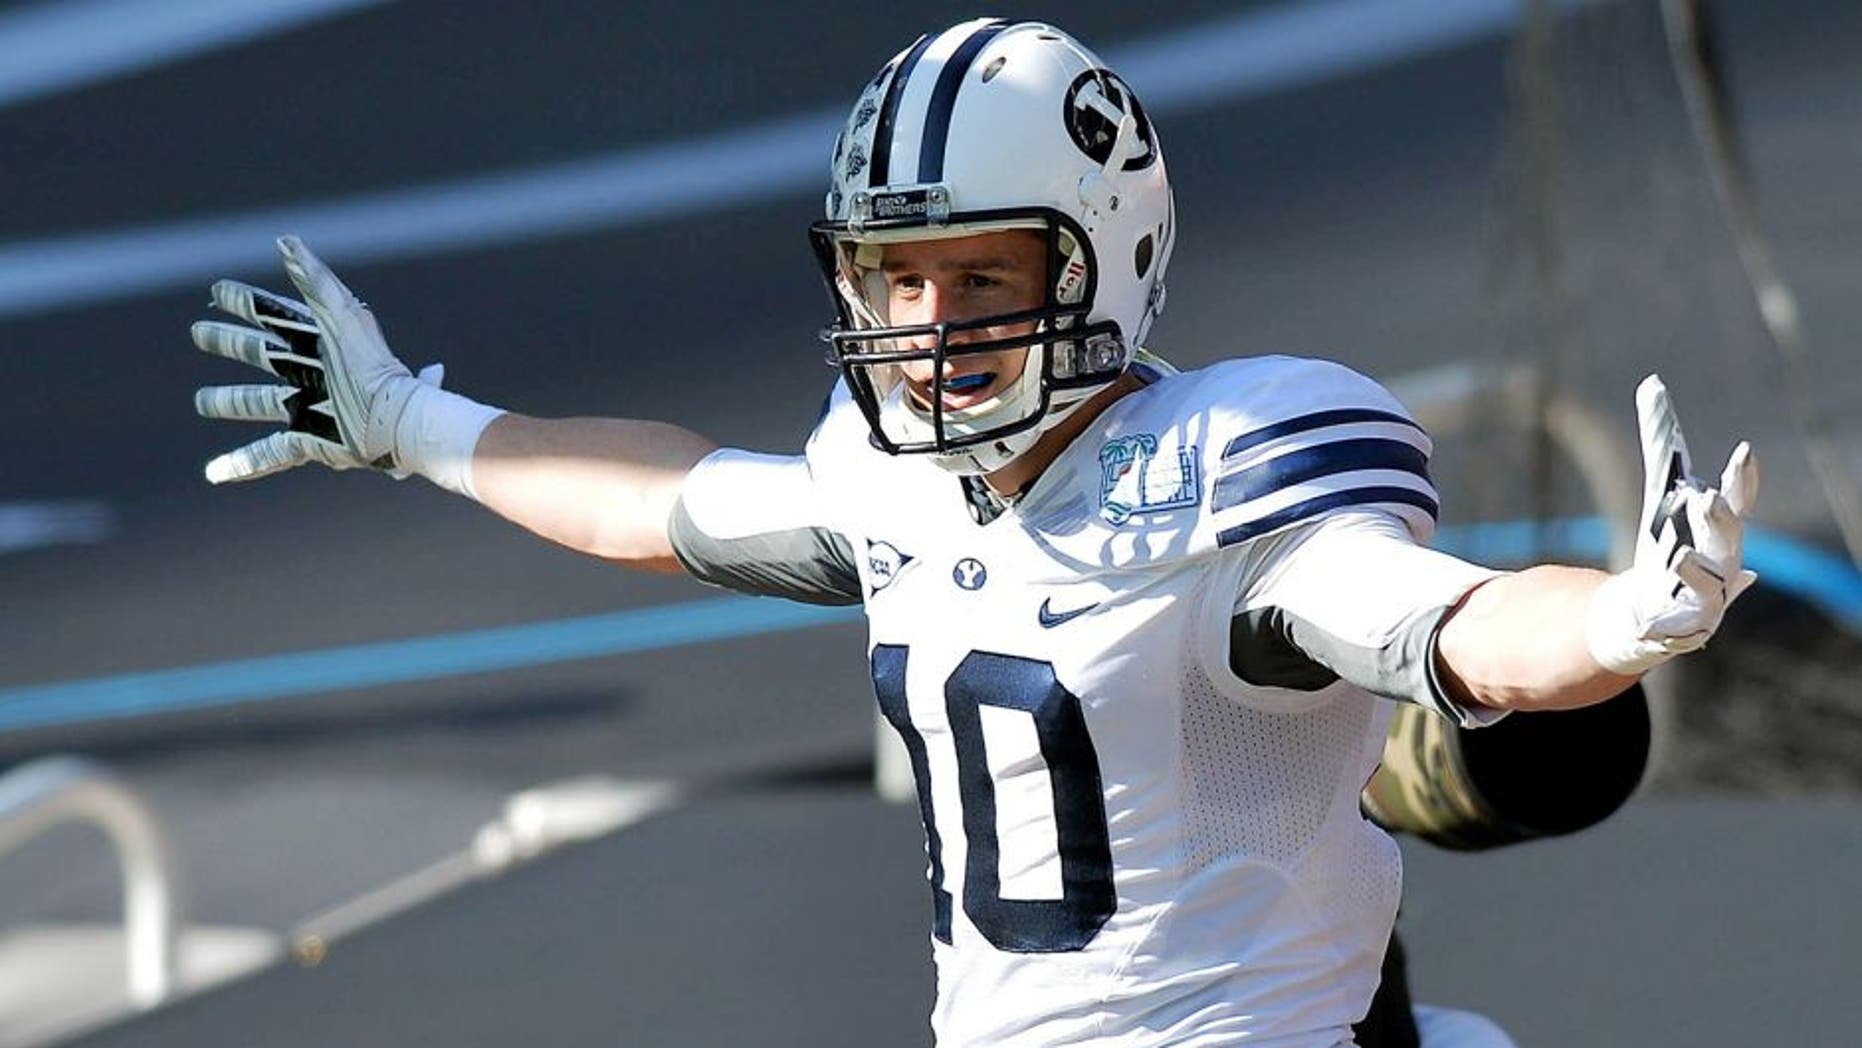 Dec 22, 2014; Miami, FL, USA; Brigham Young Cougars wide receiver Mitch Mathews (10) celebrates his touchdown against Memphis Tigers during the first quarter in the Miami Beach Bowl at Marlins Park. Mandatory Credit: Steve Mitchell-USA TODAY Sports